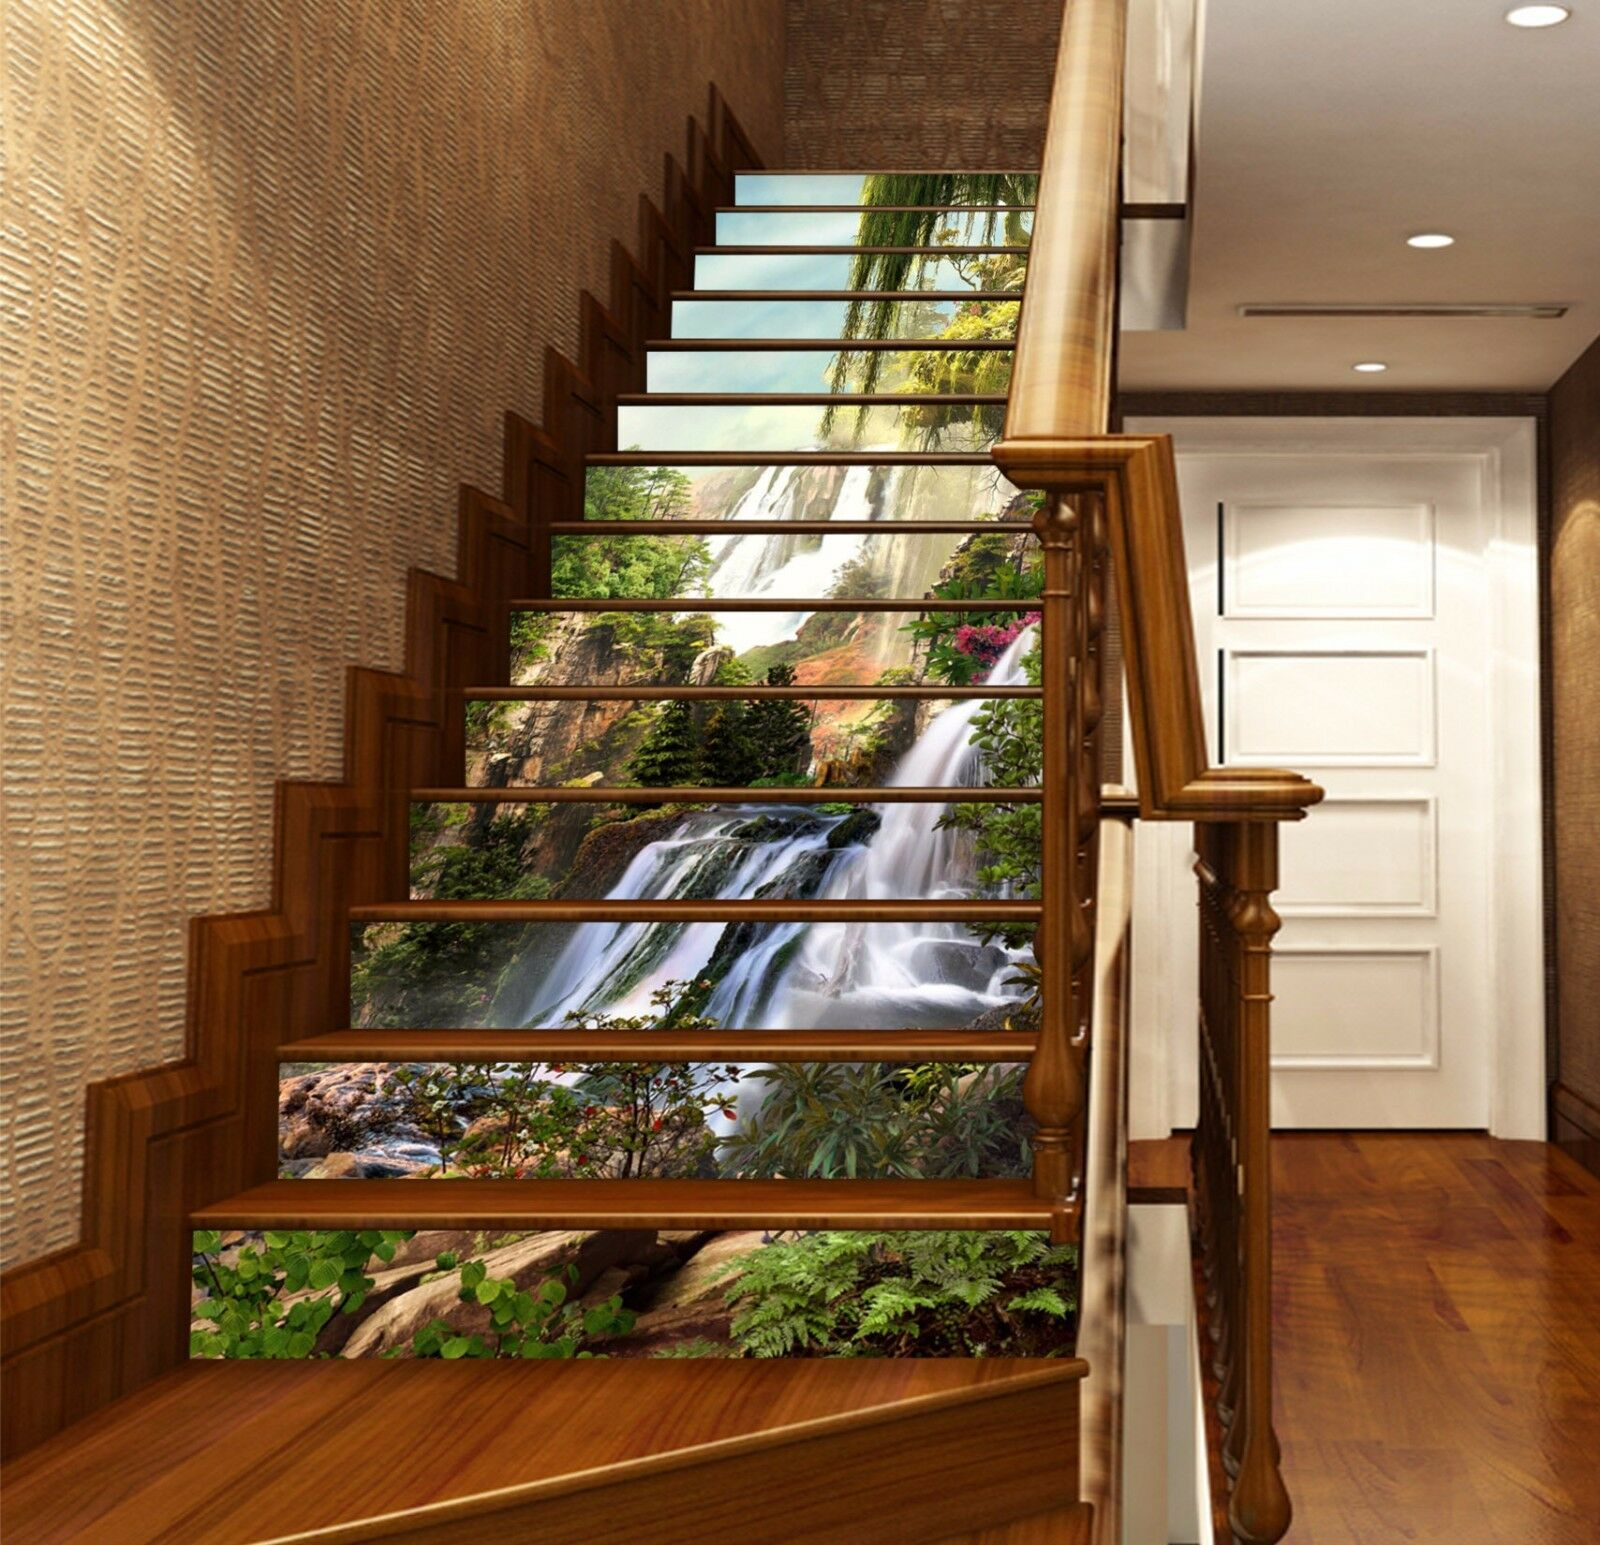 3D Nature Scenery Stairs Risers Decoration Photo Mural Vinyl Decal Wallpaper US